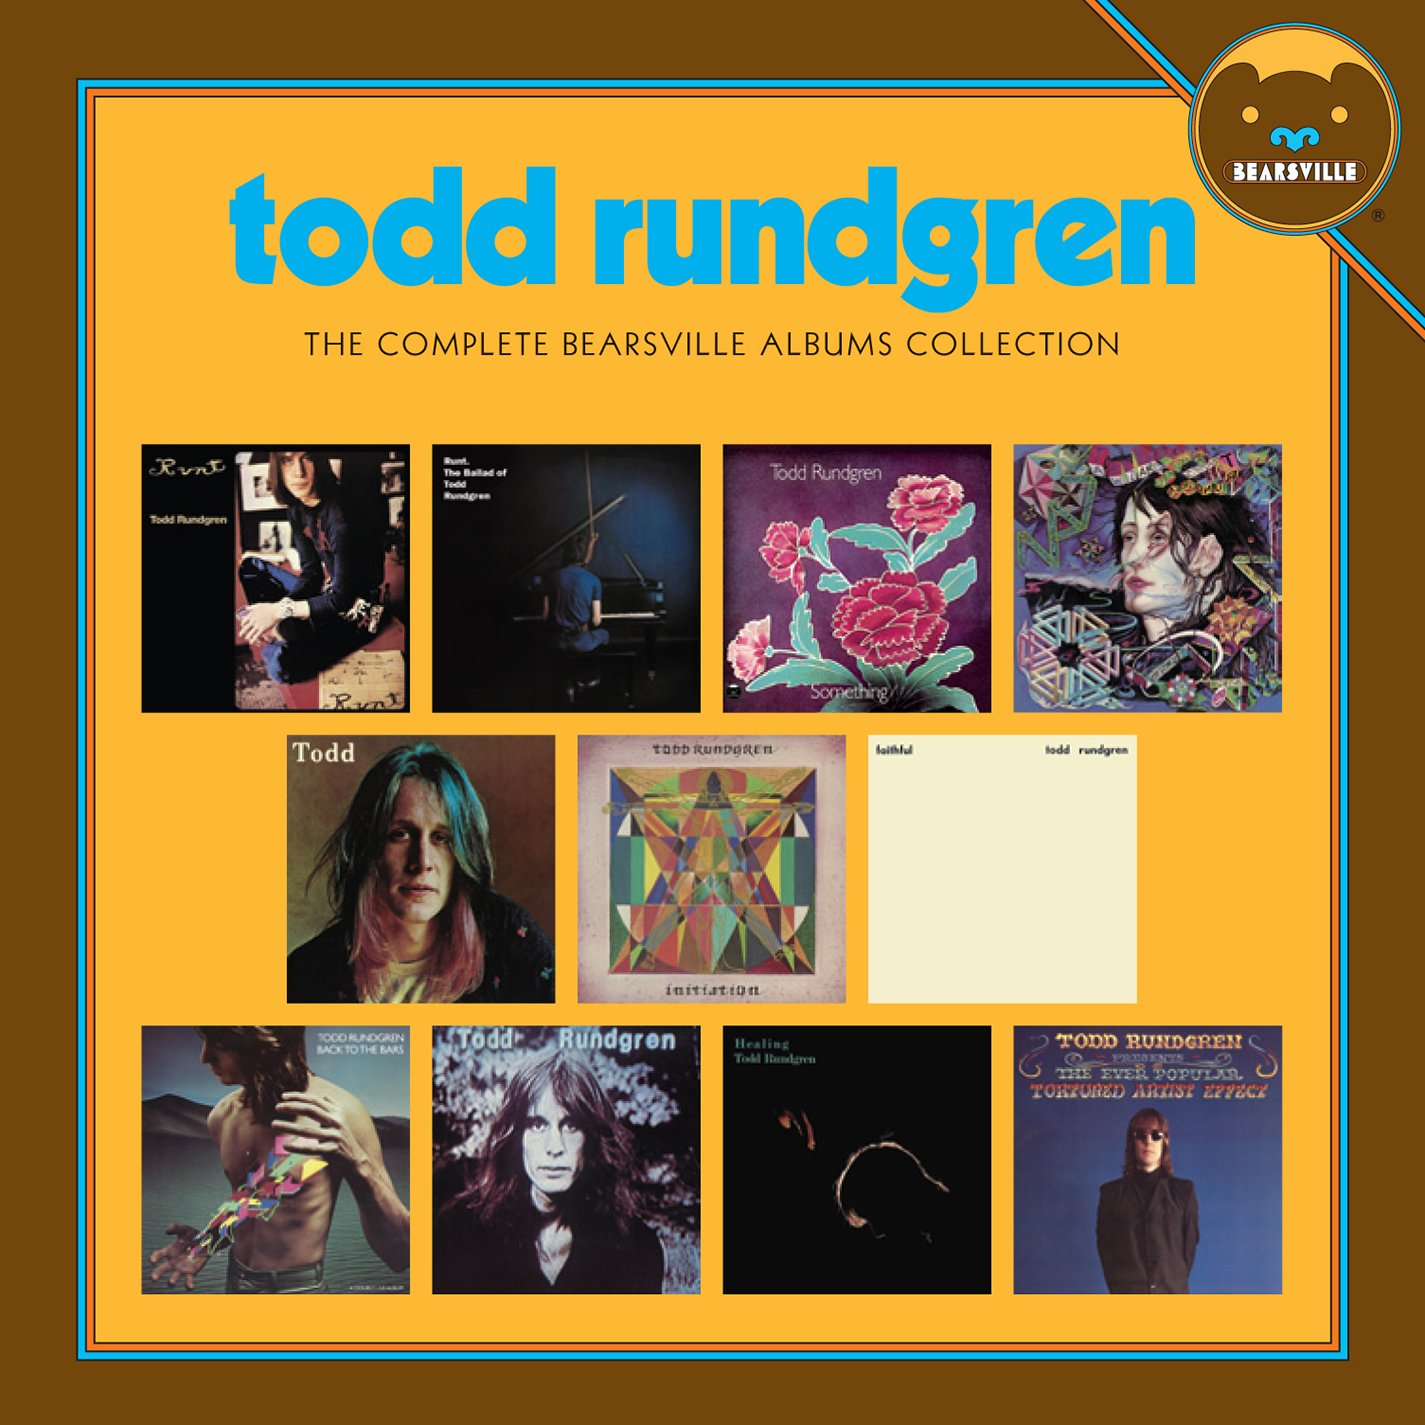 CD : Todd Rundgren - The Complete Bearsville Albums Collection (Boxed Set, 13 Disc)